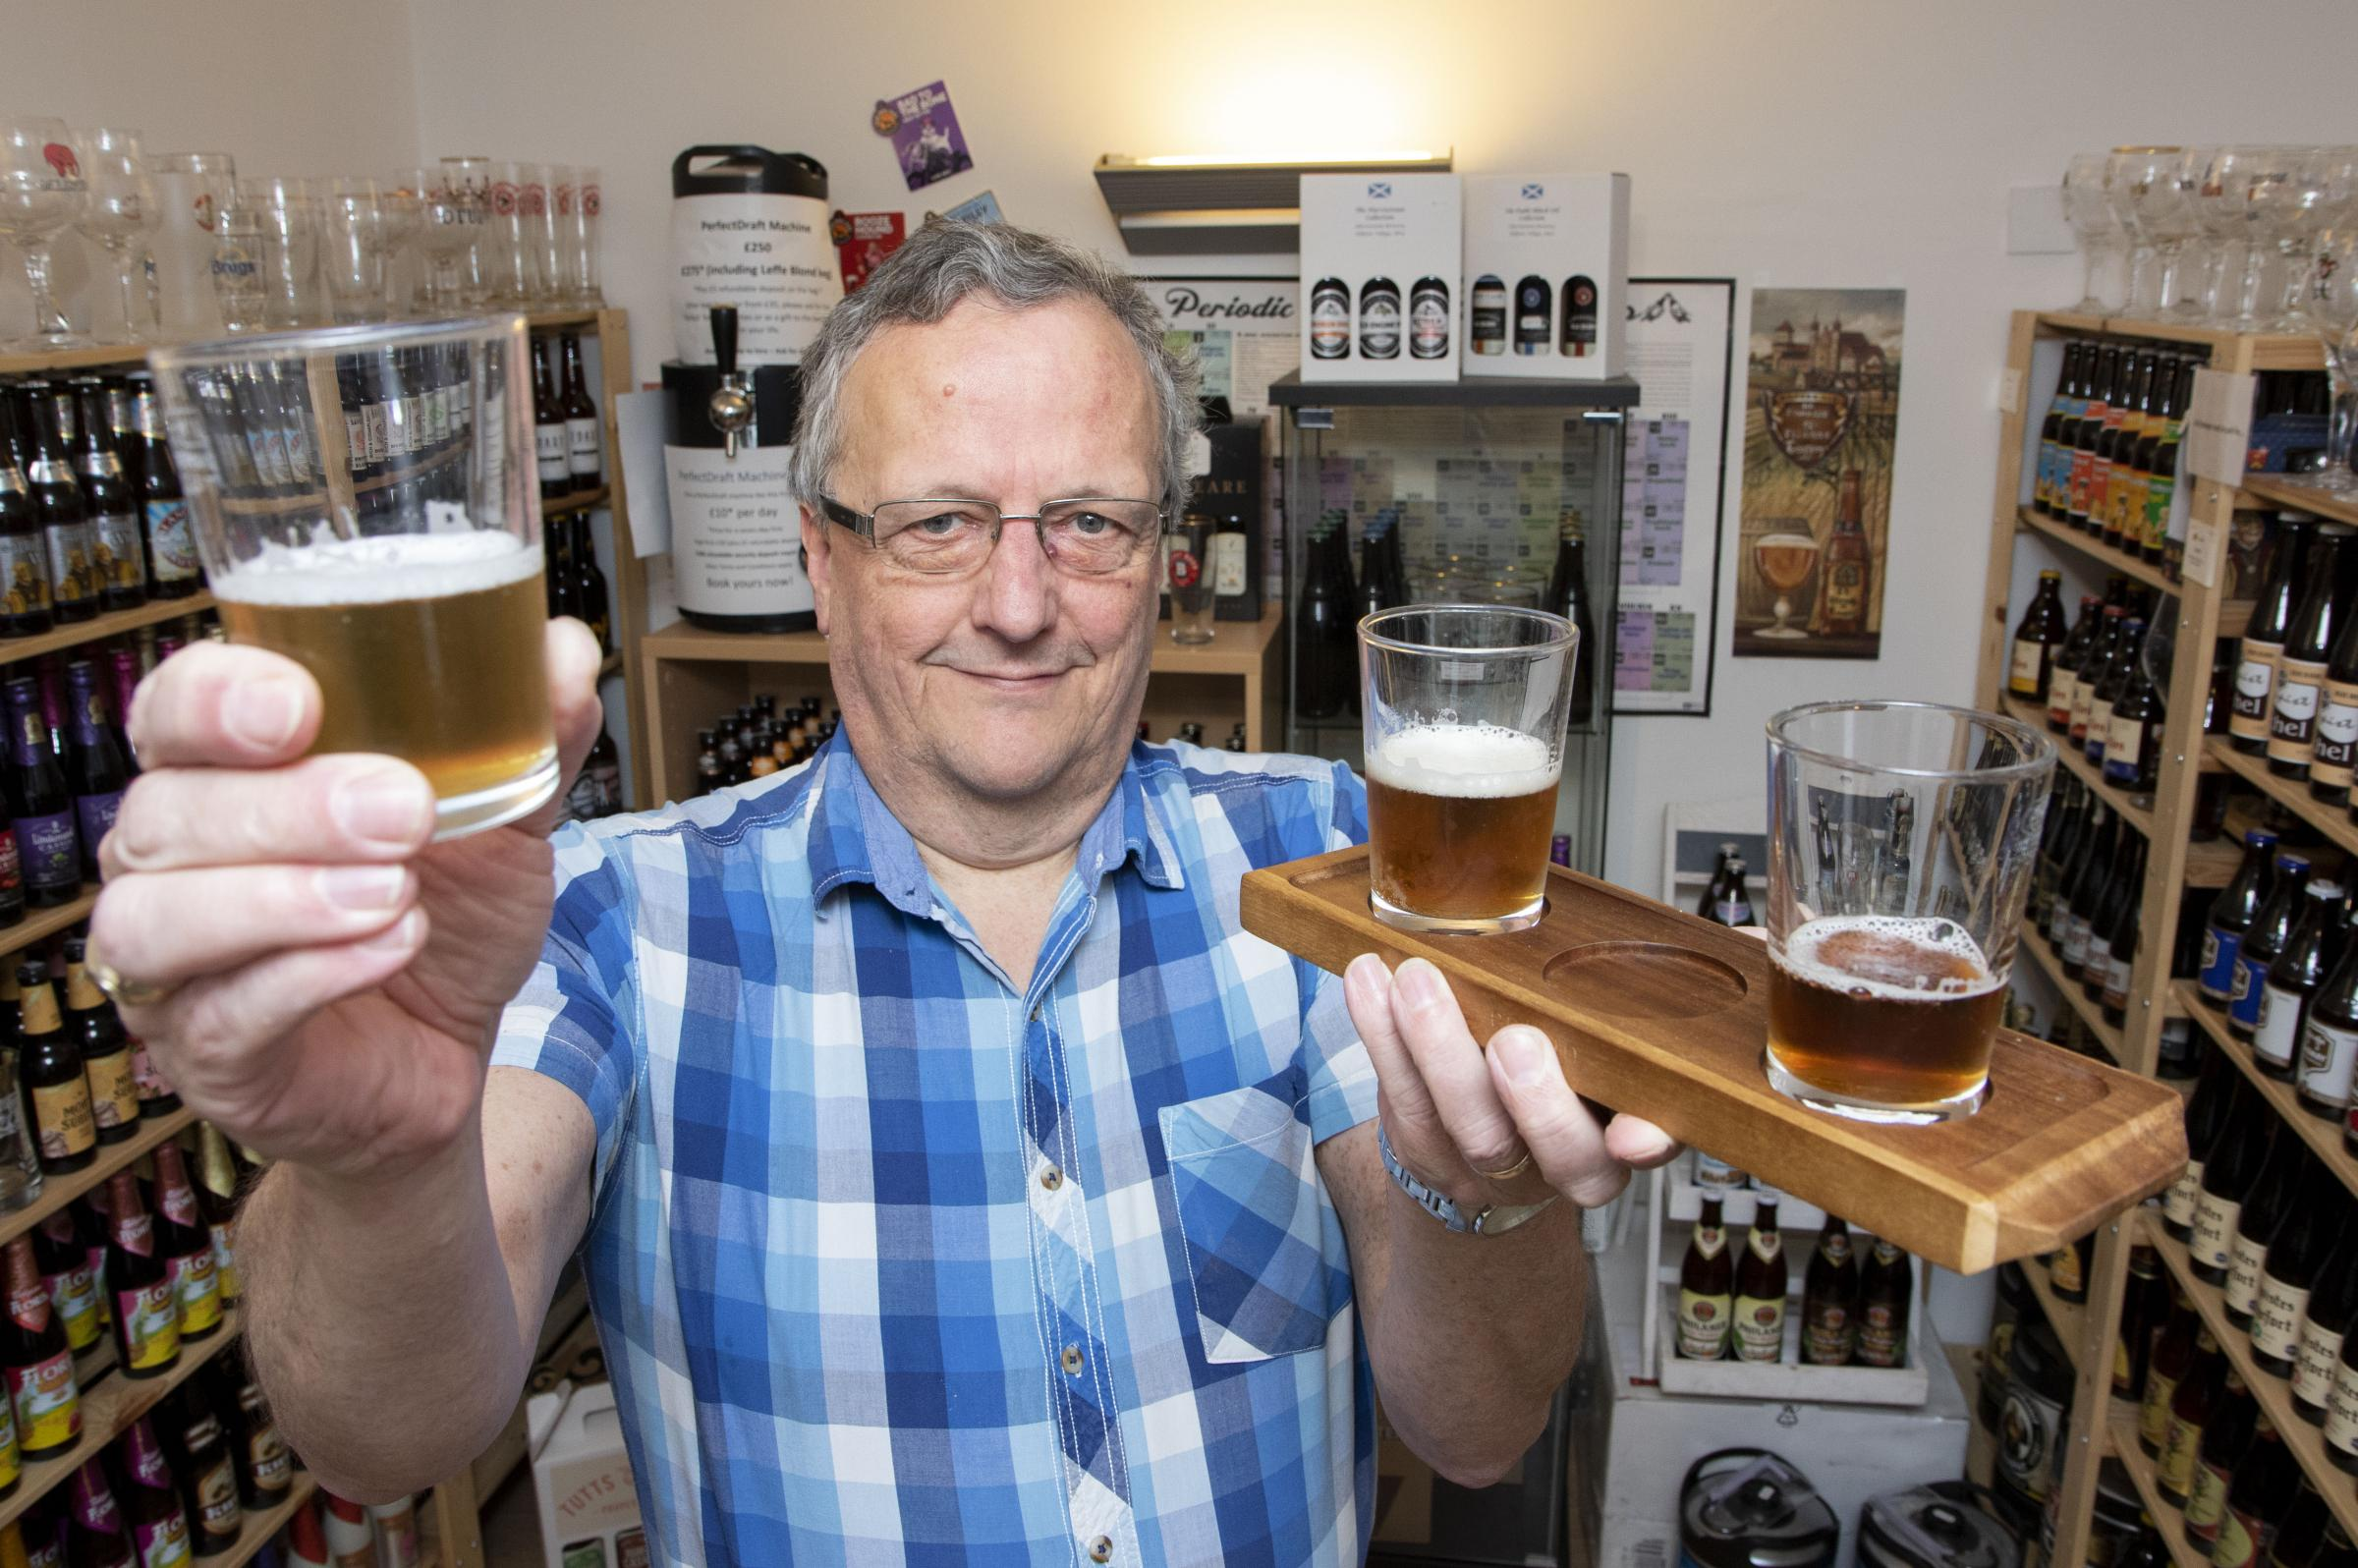 WN_090418_10 Paul Jackson 09.04.18 Moreton-in-Marsh - Simon Butler, owenr of Moreton Beer Cellar, is holding a beer tasing in aid of Loganberry Trust..